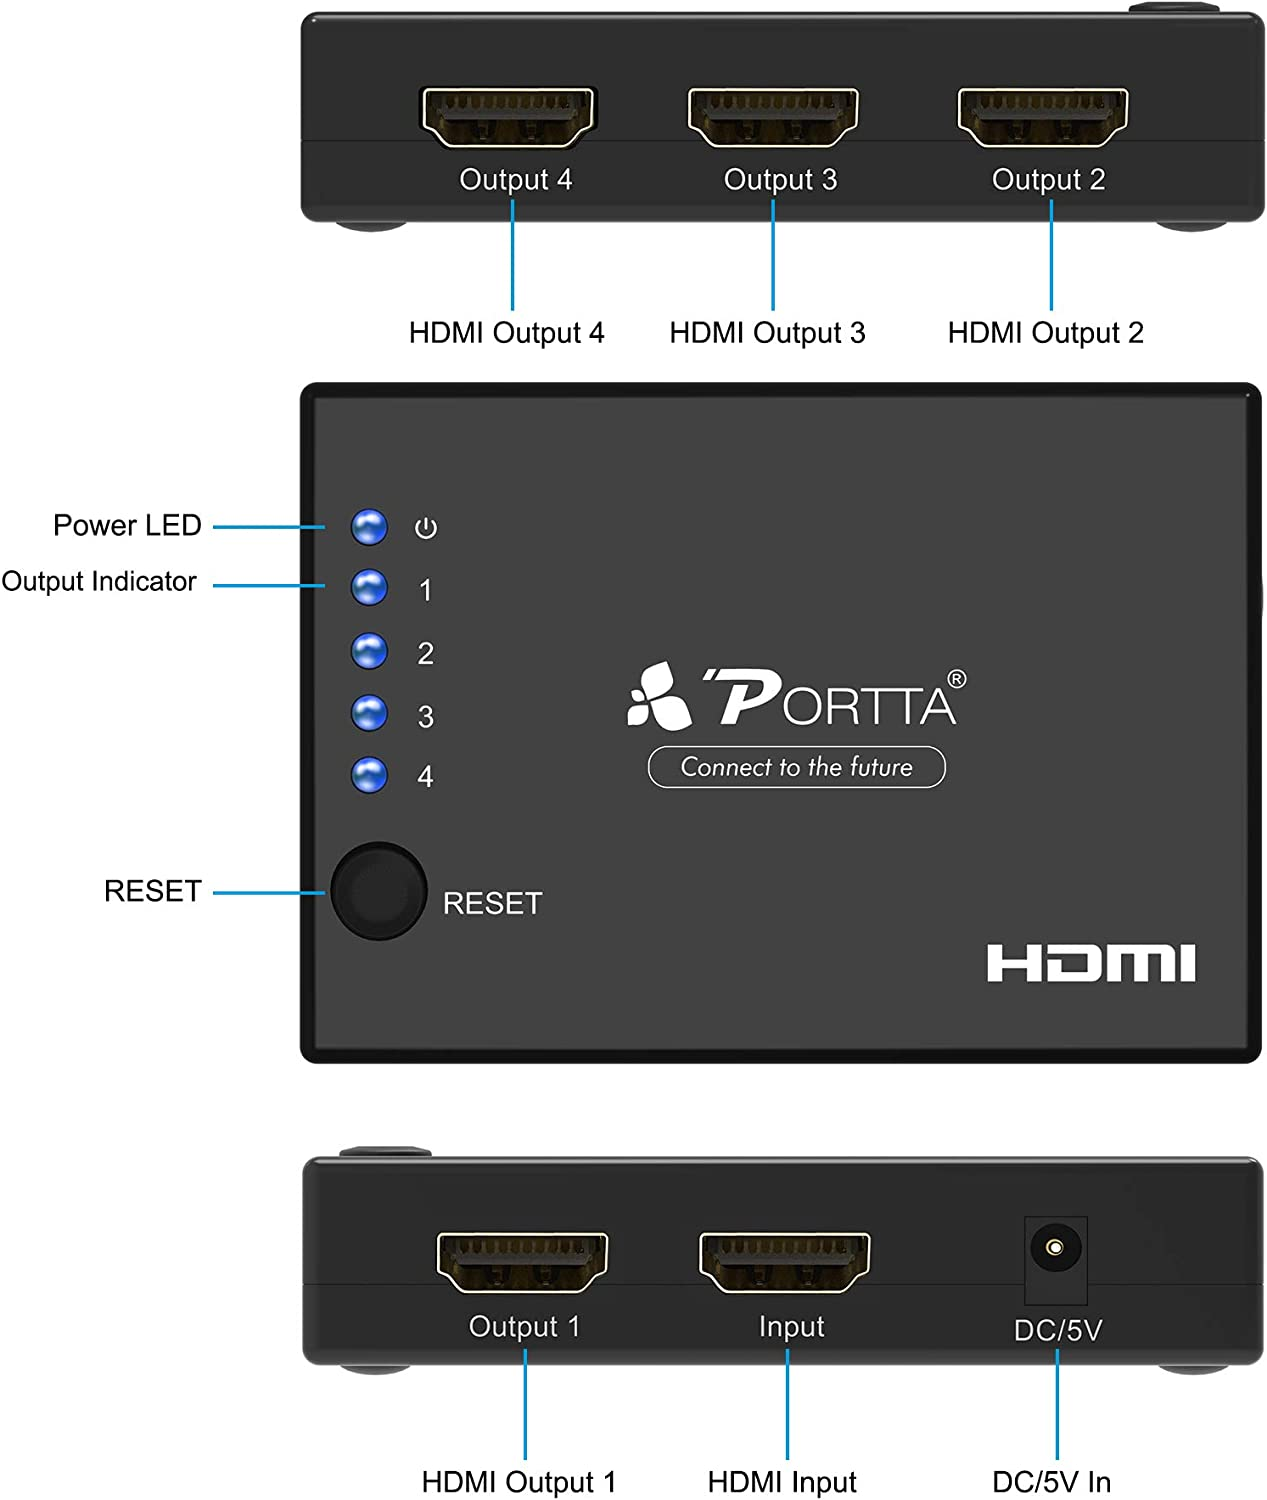 Portta HDMI Switch Splitter 4K HDMI Cable Splitter 1 in 4 Out Super Mini Splitter 4 Port 1x4 v1.4 with 340MHz and 4k x 2k Support Full 3D HD 1080P Uncompressed Compressed Audio for HDTV PC